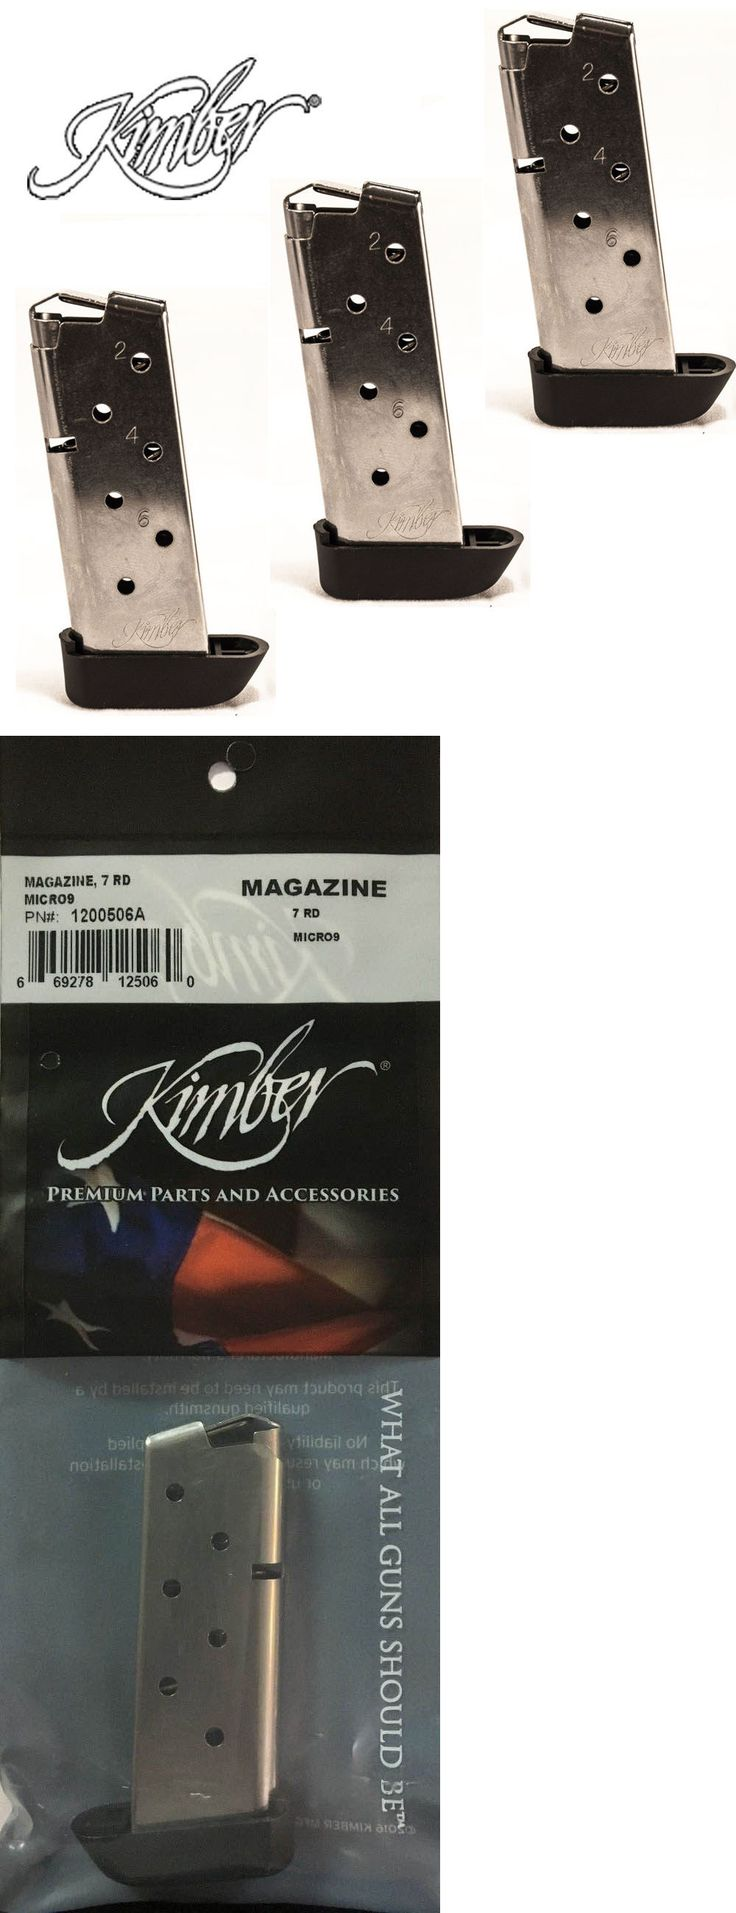 Magazines 177879: Kimber Factory ( Micro 9 ) 9Mm 7-Round Magazine W Extension (3-Pack) #1200506A -> BUY IT NOW ONLY: $77 on eBay!